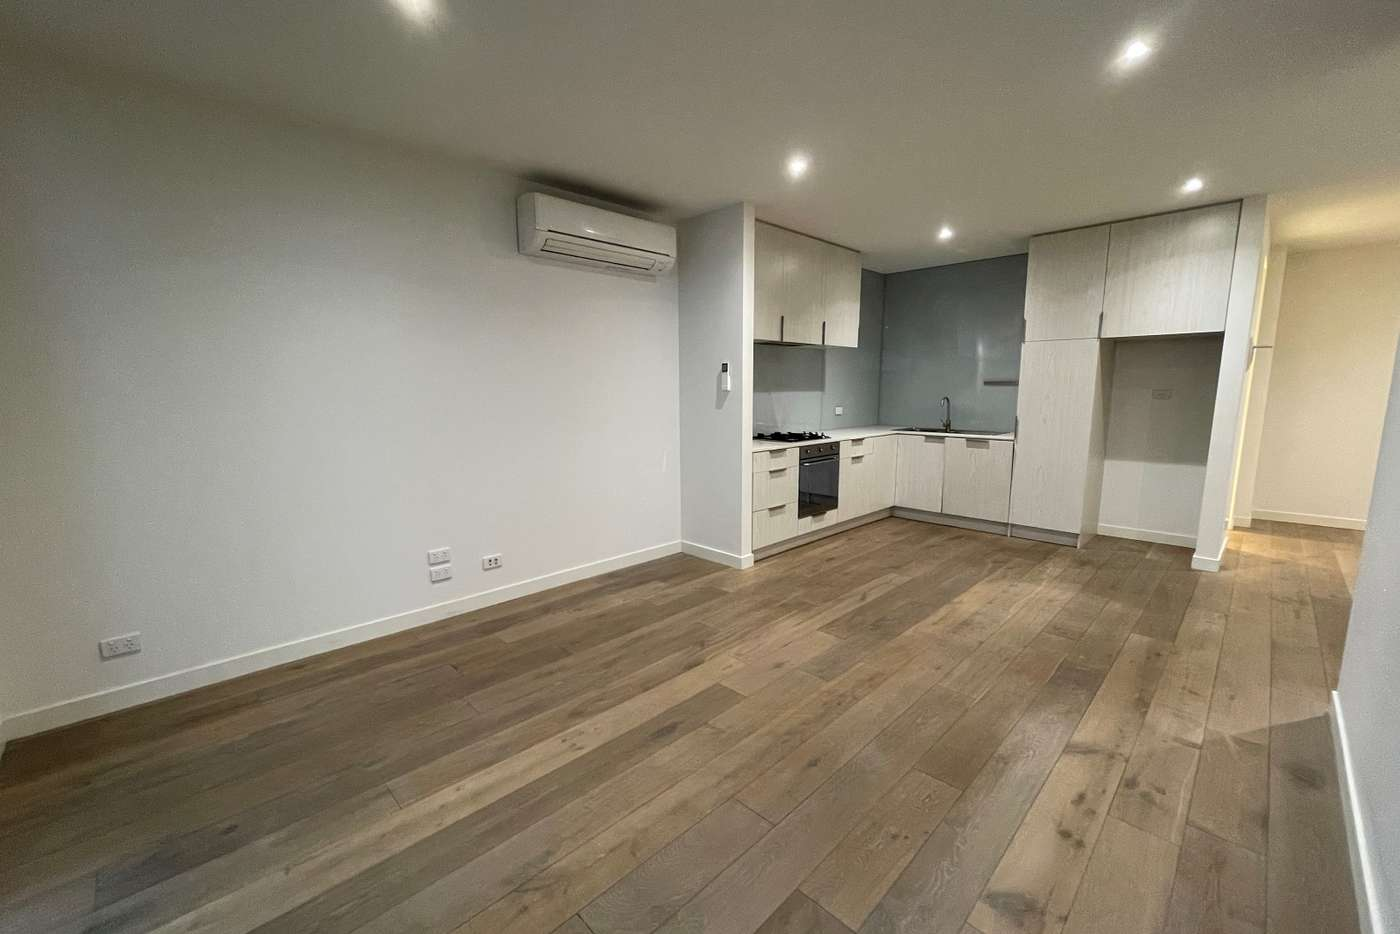 Main view of Homely apartment listing, 102/20 Napier Street, Essendon VIC 3040